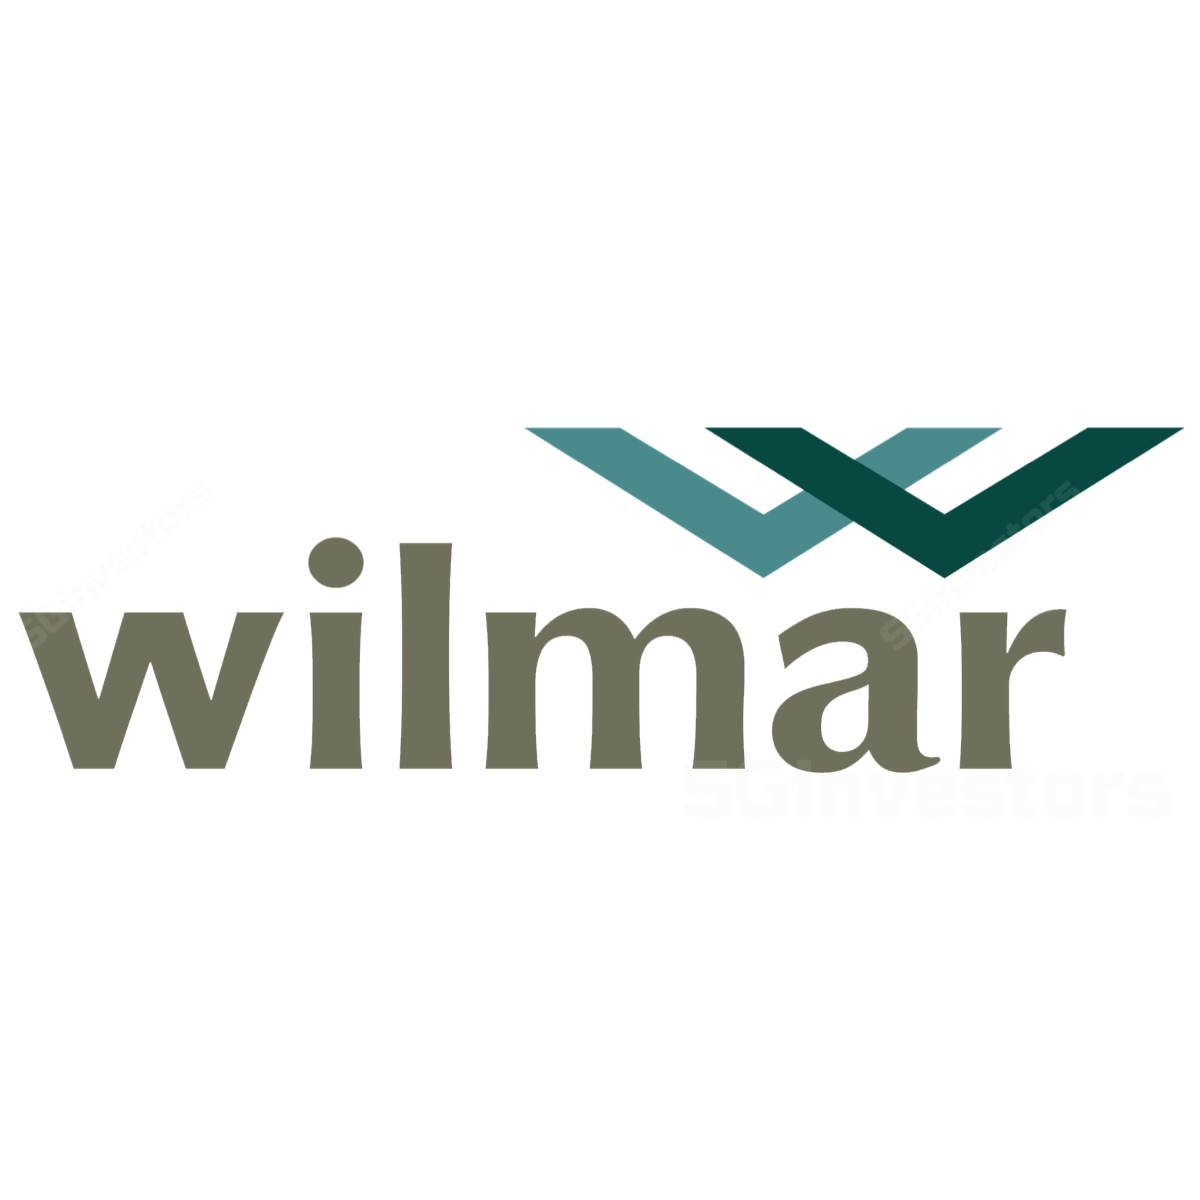 Wilmar International (WIL SP) - UOB Kay Hian 2018-02-26: A Better 2018 On Steady Growth